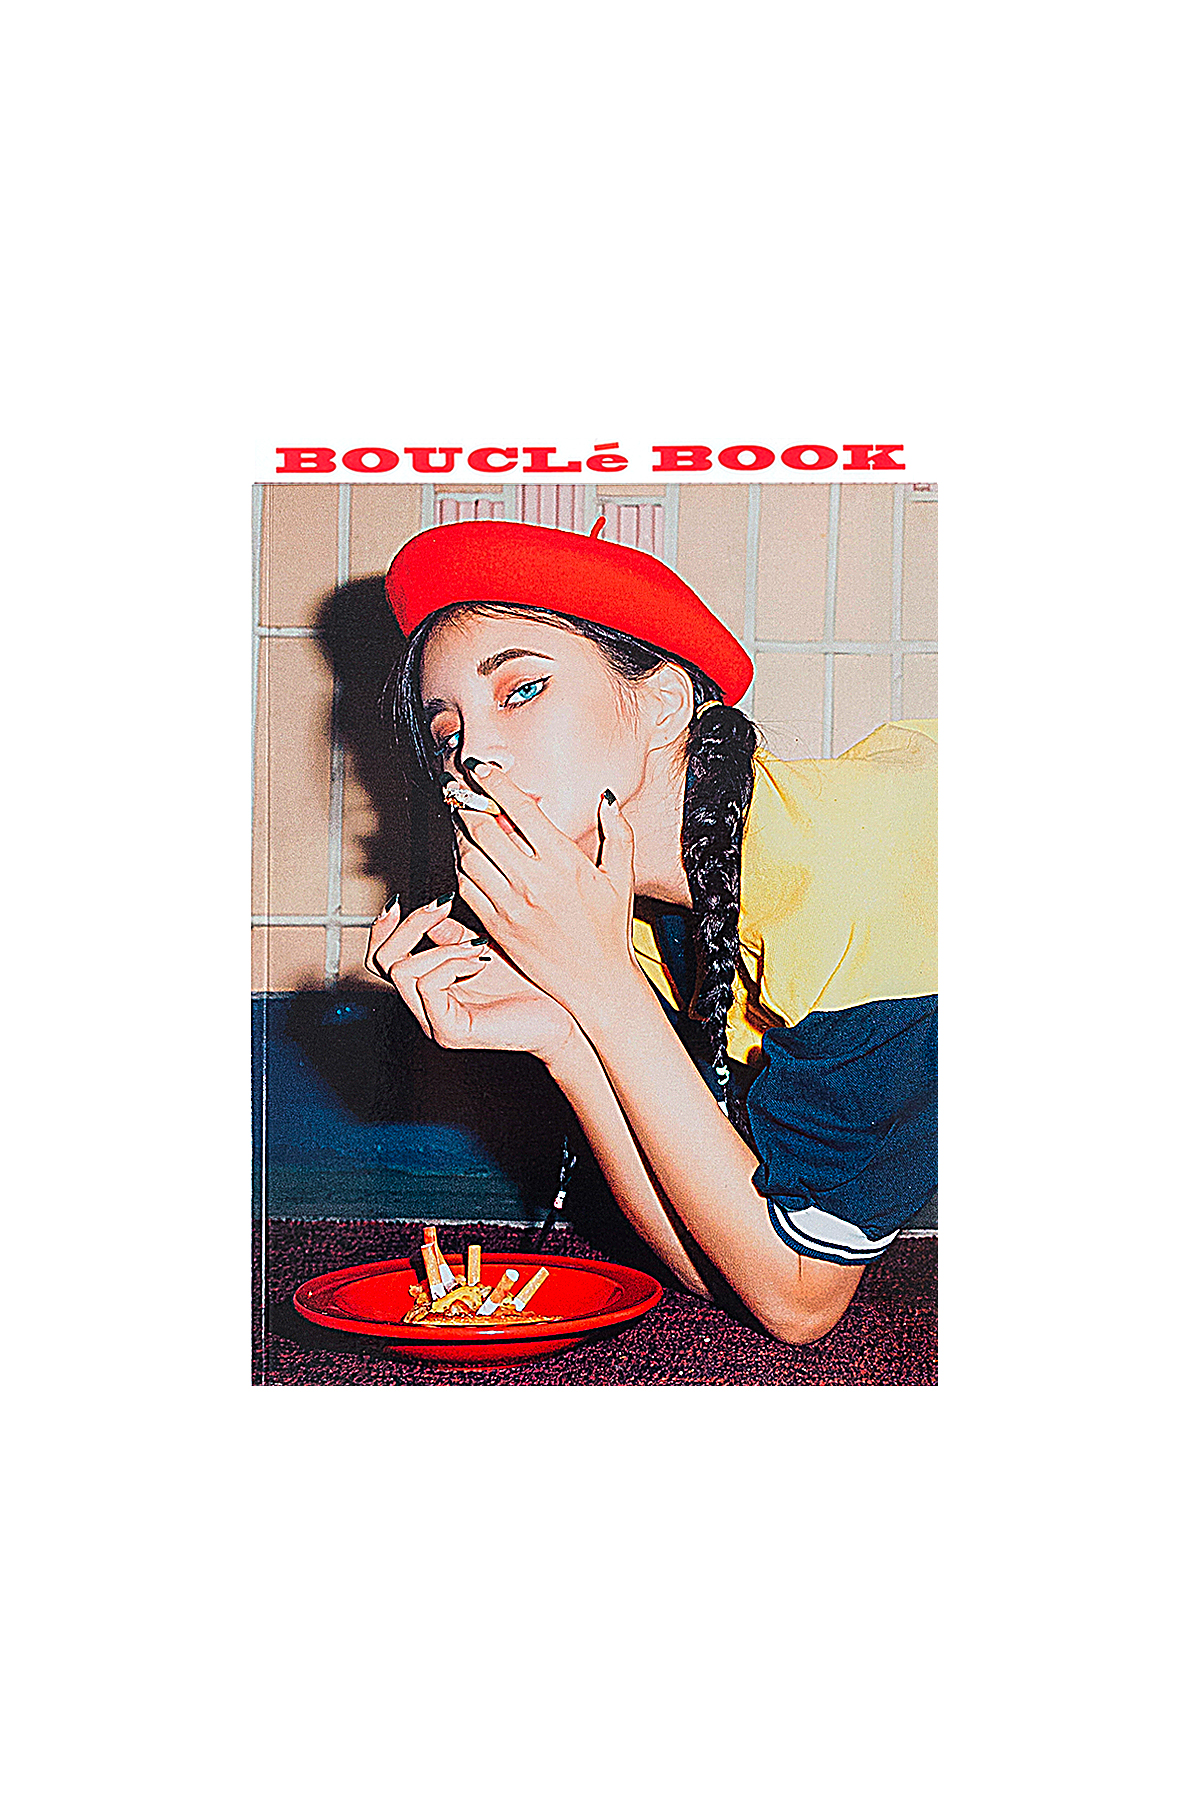 Studio BOUCLé : BOUCLé Book No.1